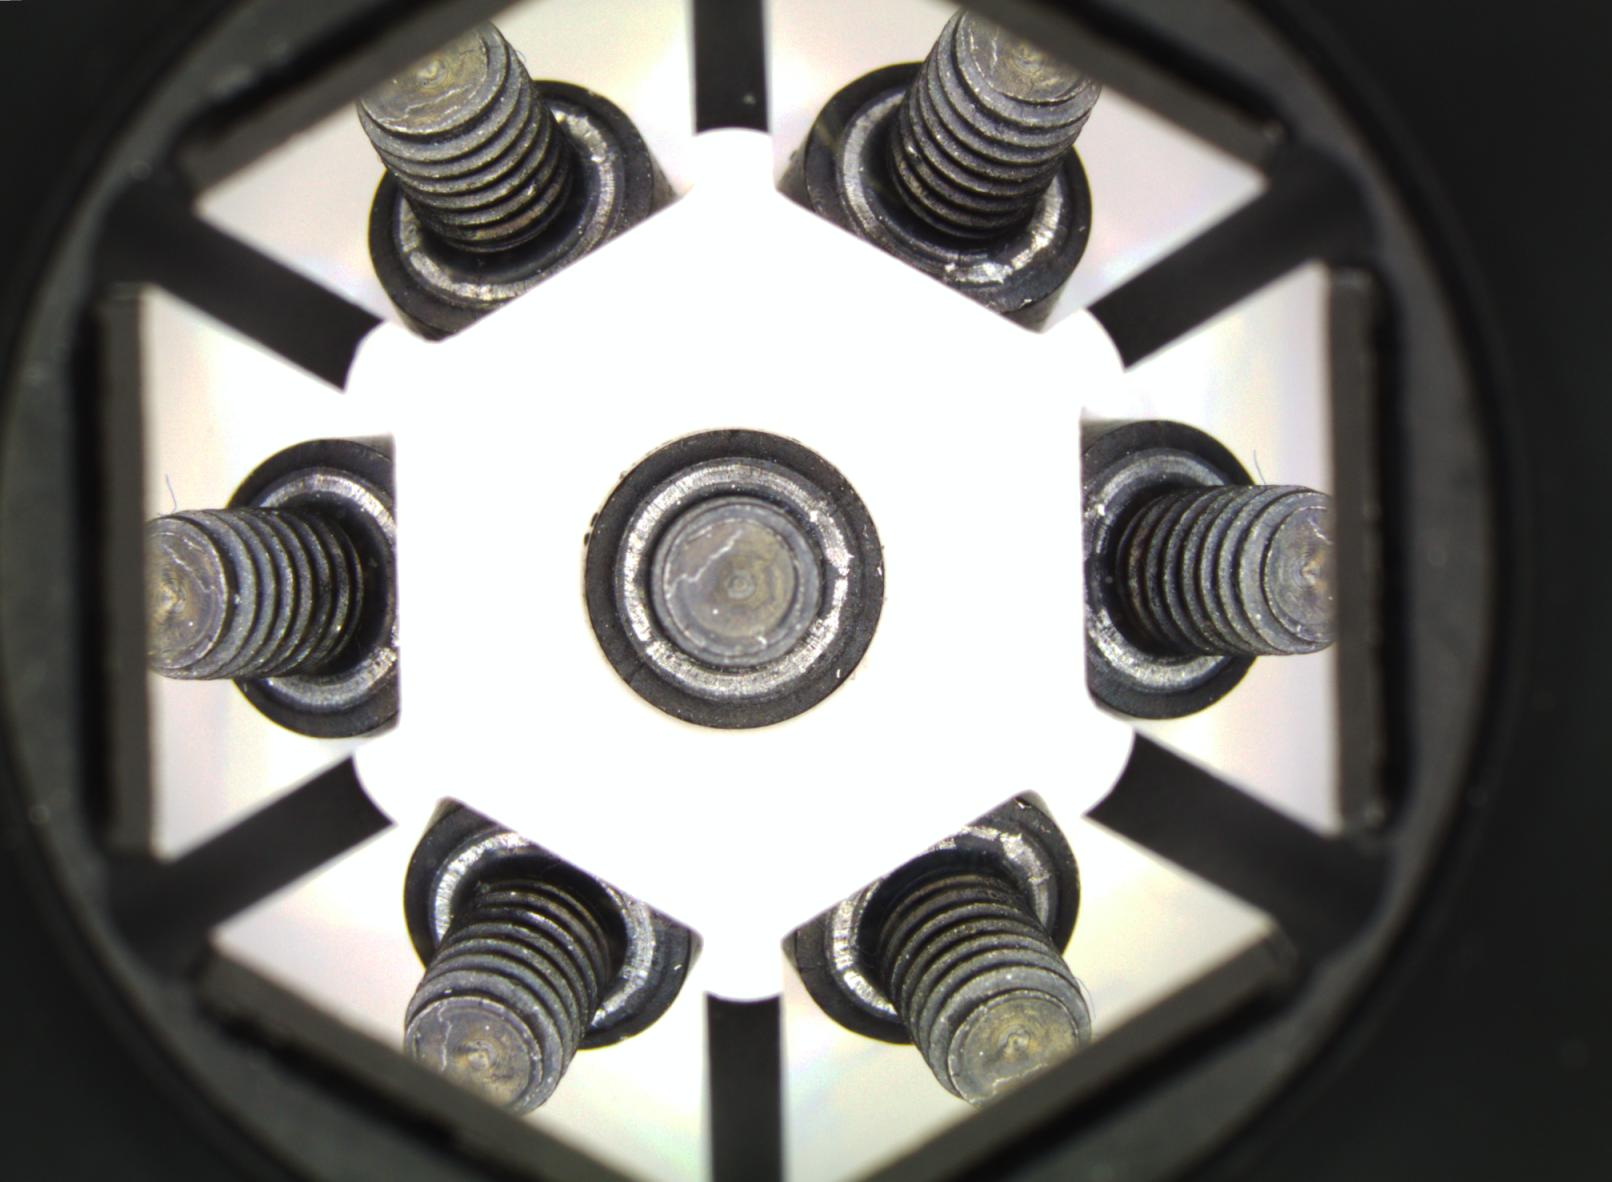 Screw inspected using PCMP Micro Polyview